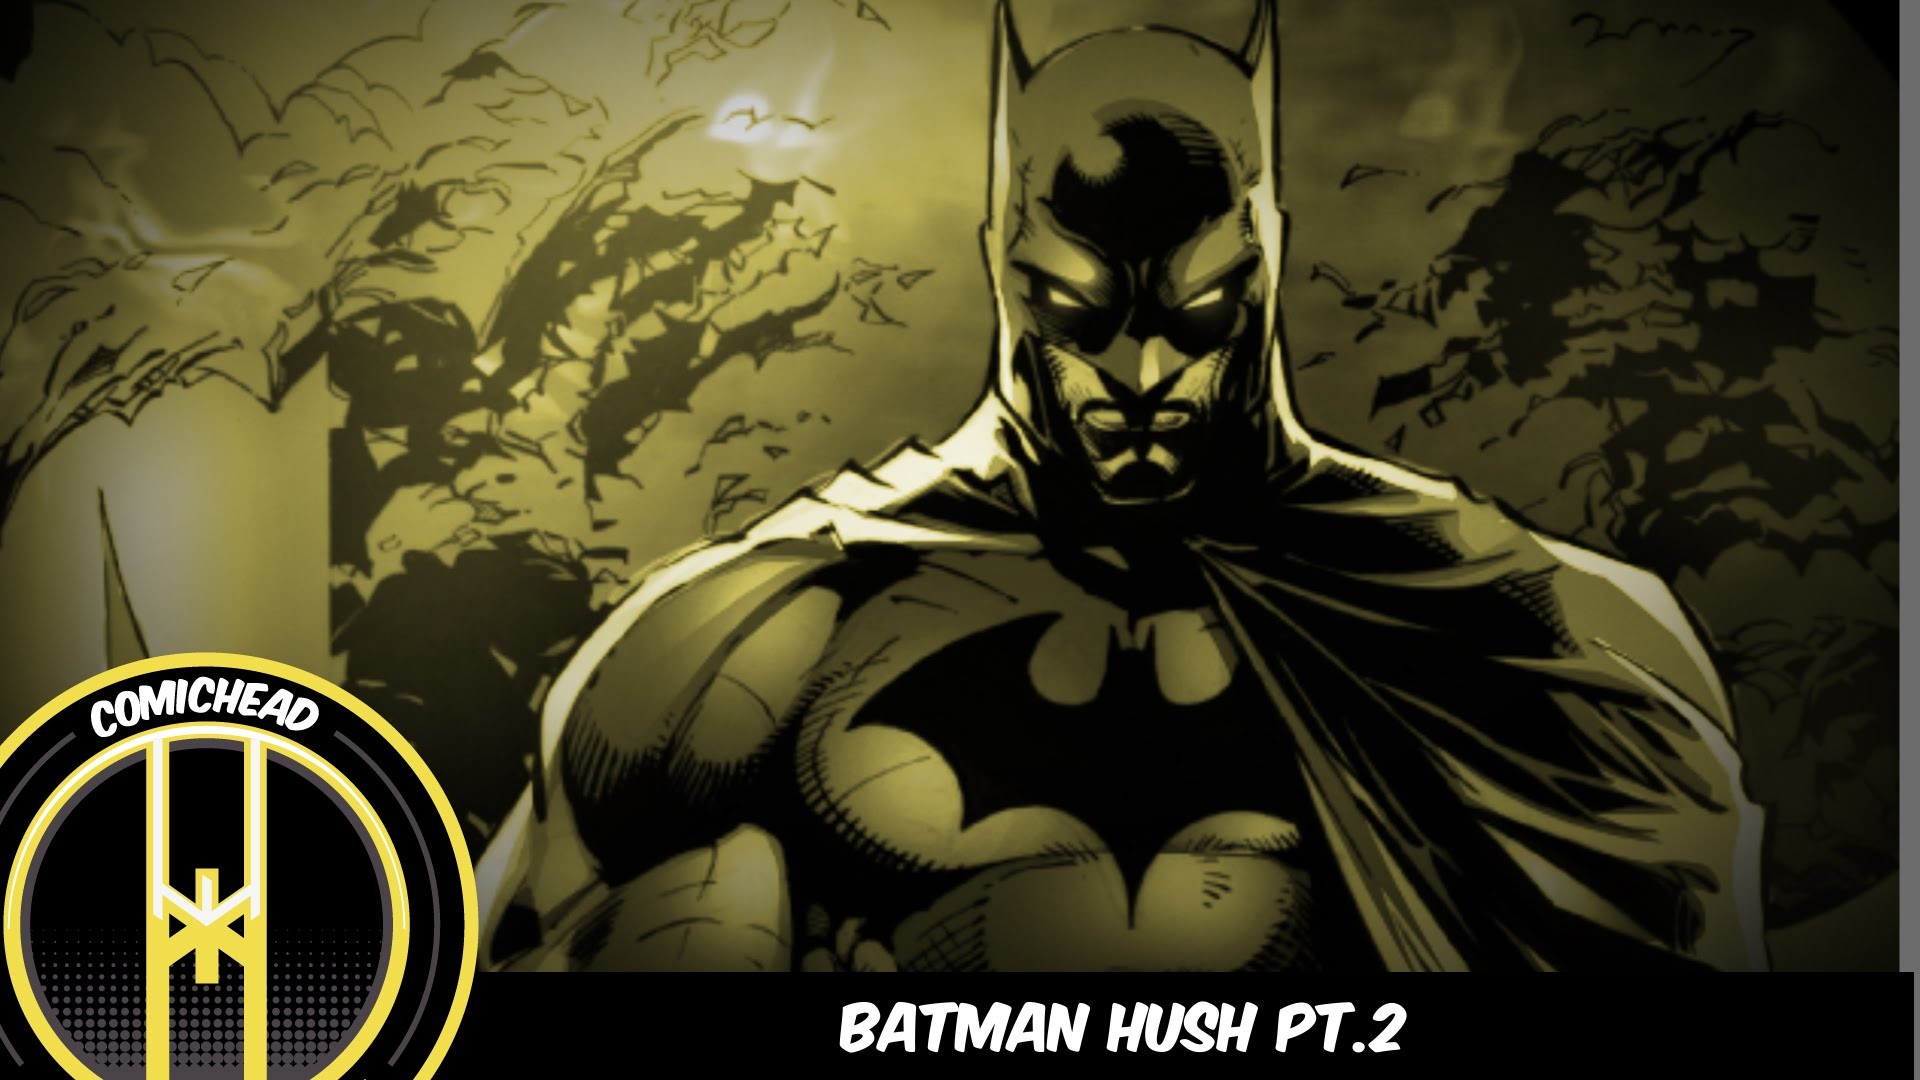 1920x1080 Comichead Issue #29: Batman: HUSH Pt. 2